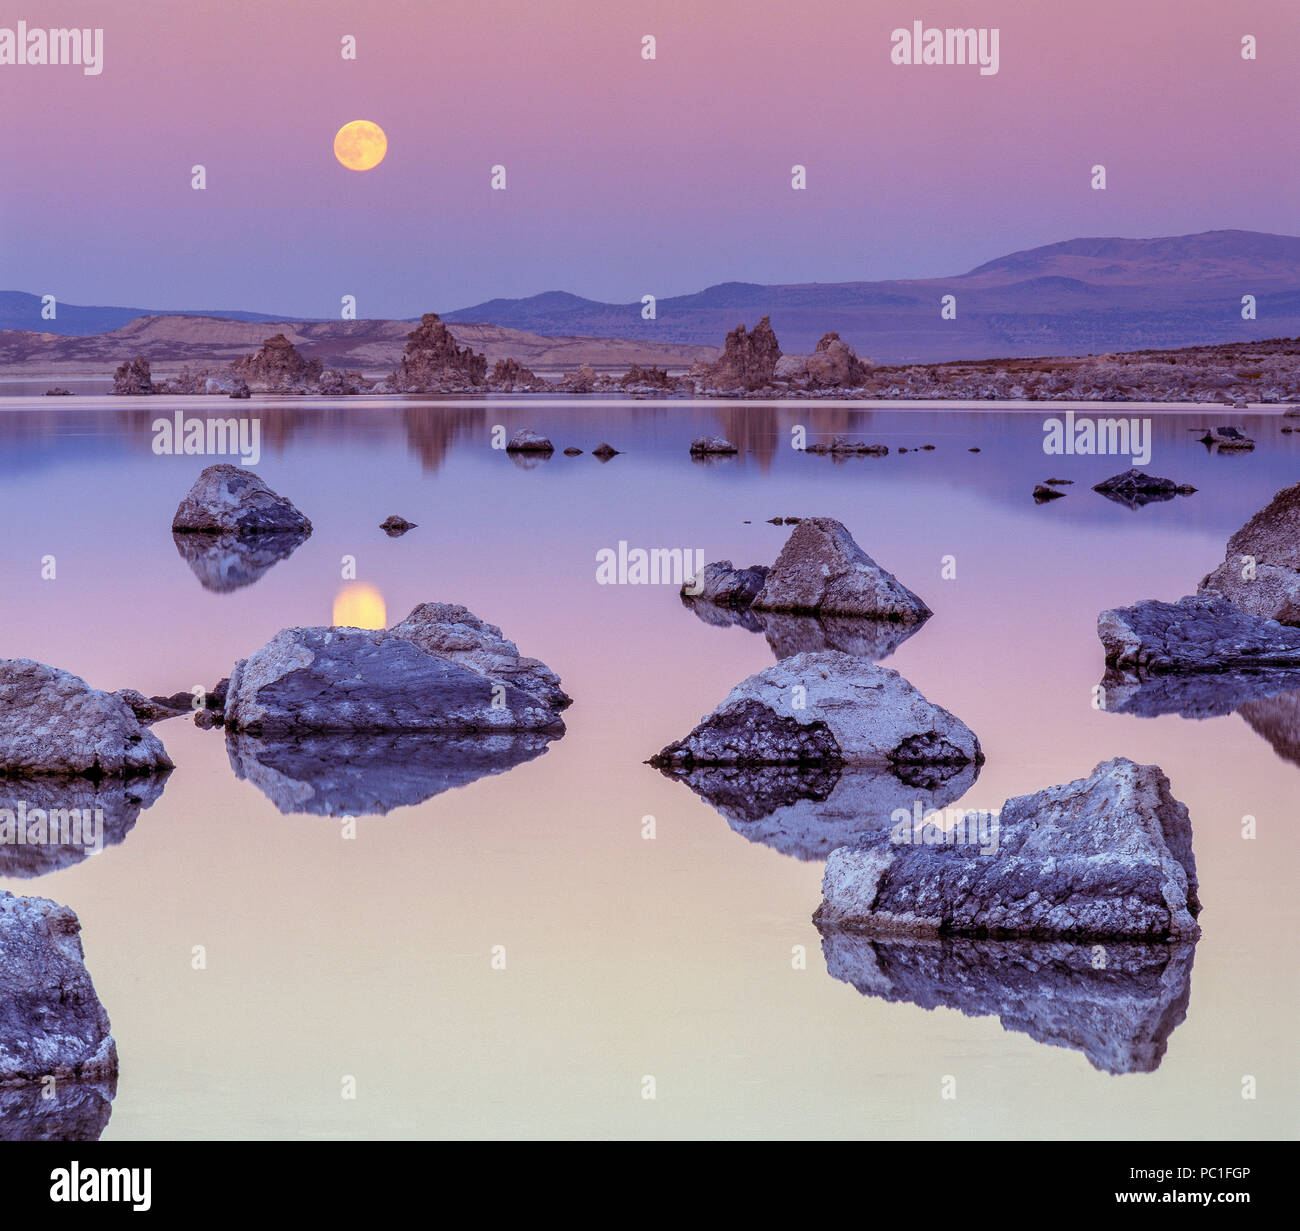 Moonrise, lac Mono, Mono Basin National Forest Scenic Area, Inyo National Forest, Californie Photo Stock